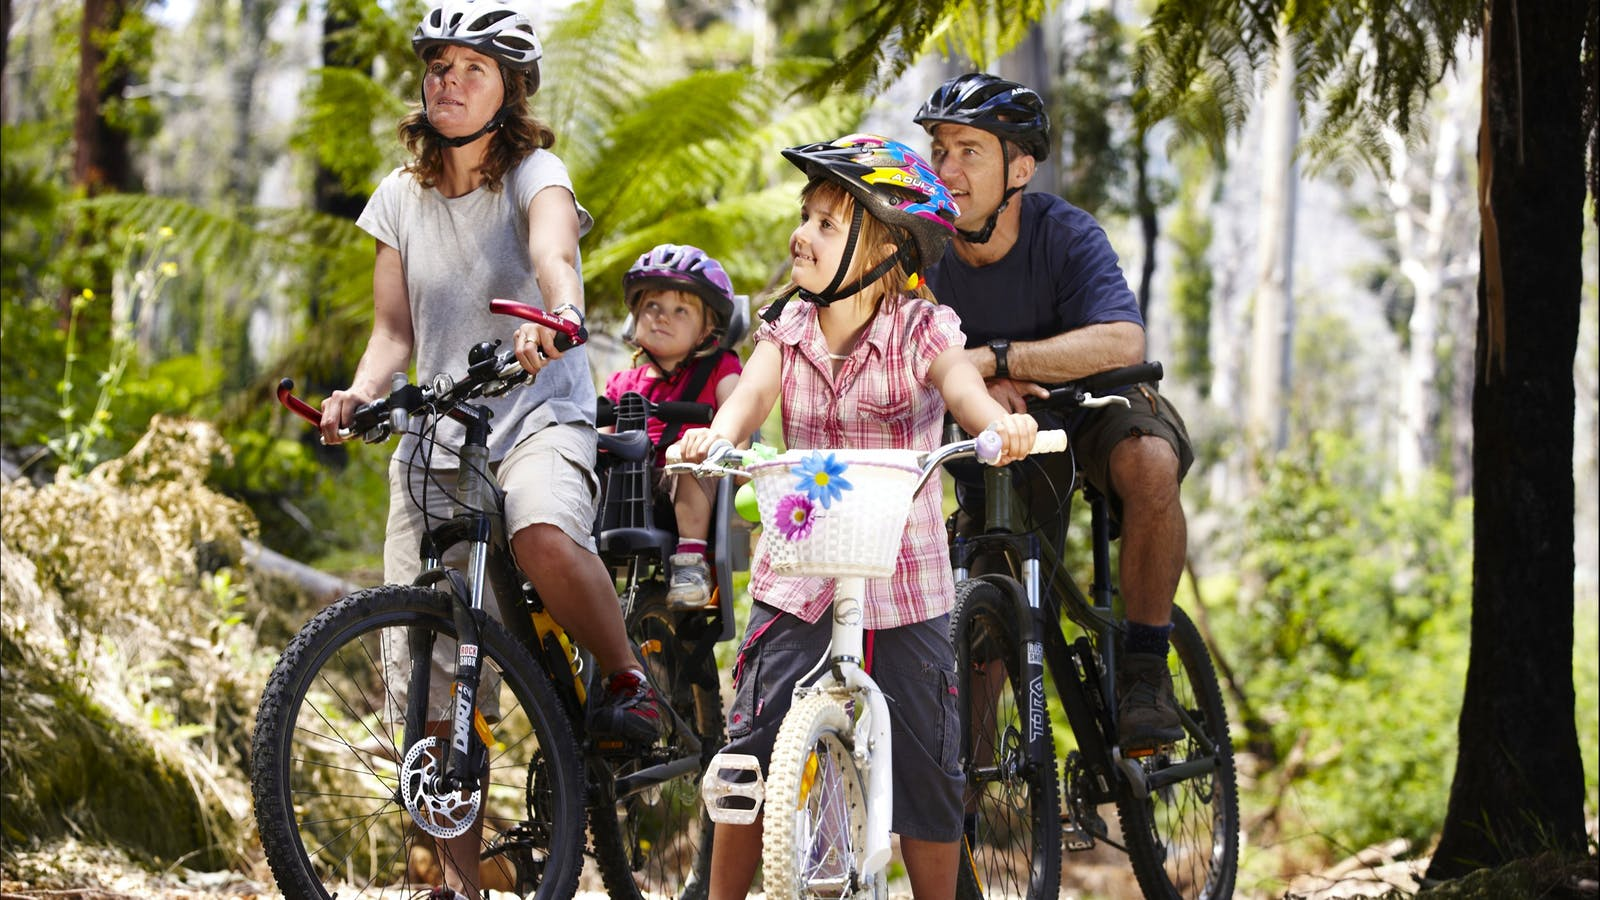 family of four enjoying bike riding in a bush setting